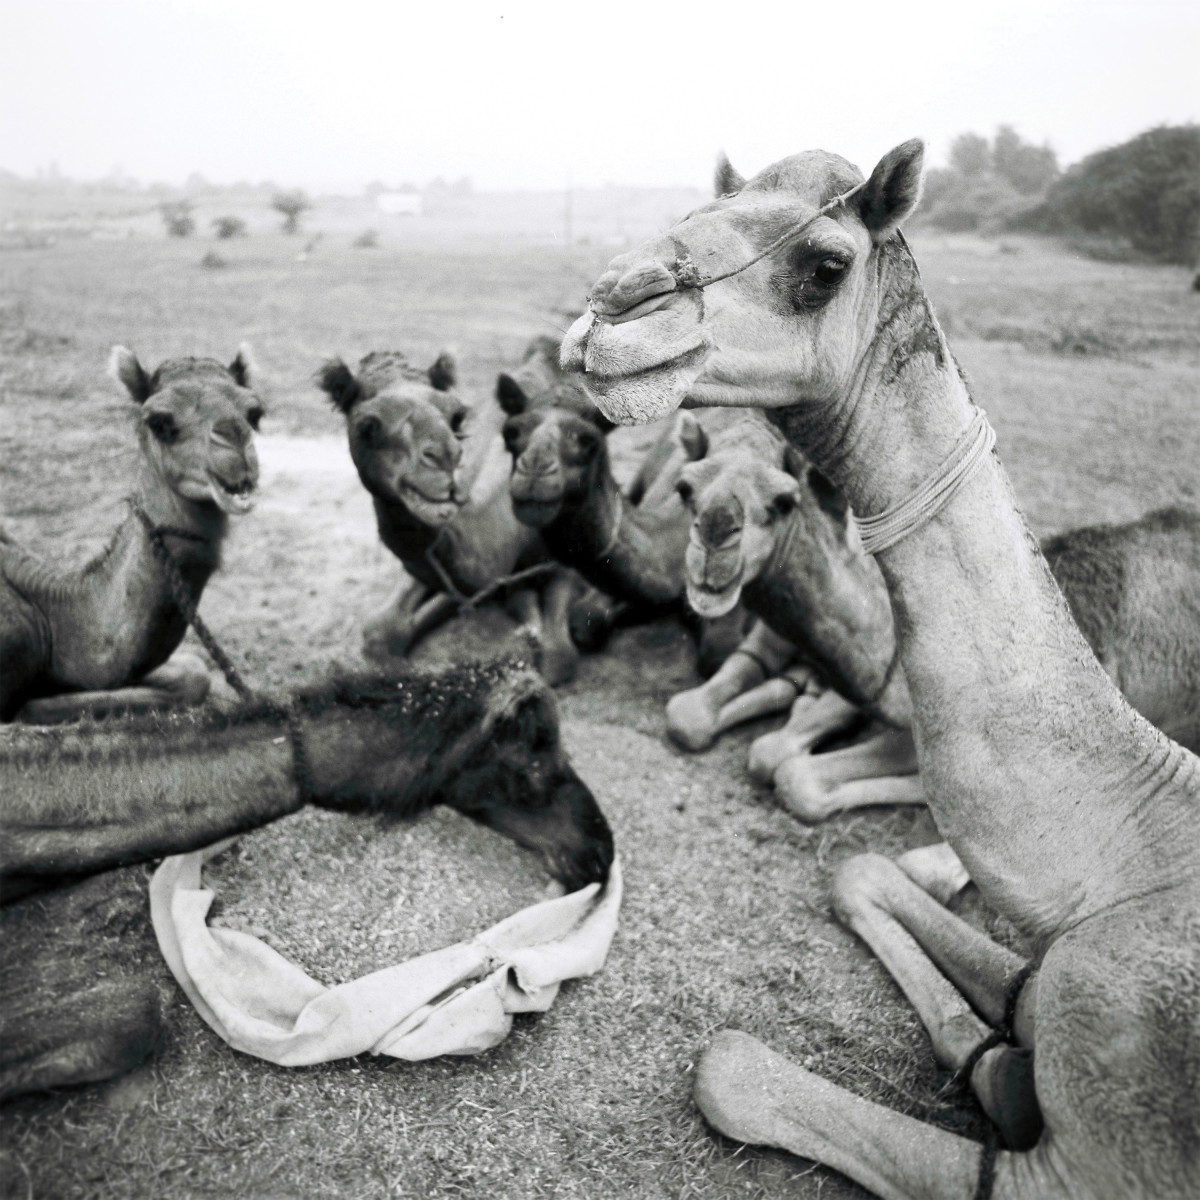 Camels, once bred and traded as a means of transportation in India, are being replaced by affordable cars and trucks.